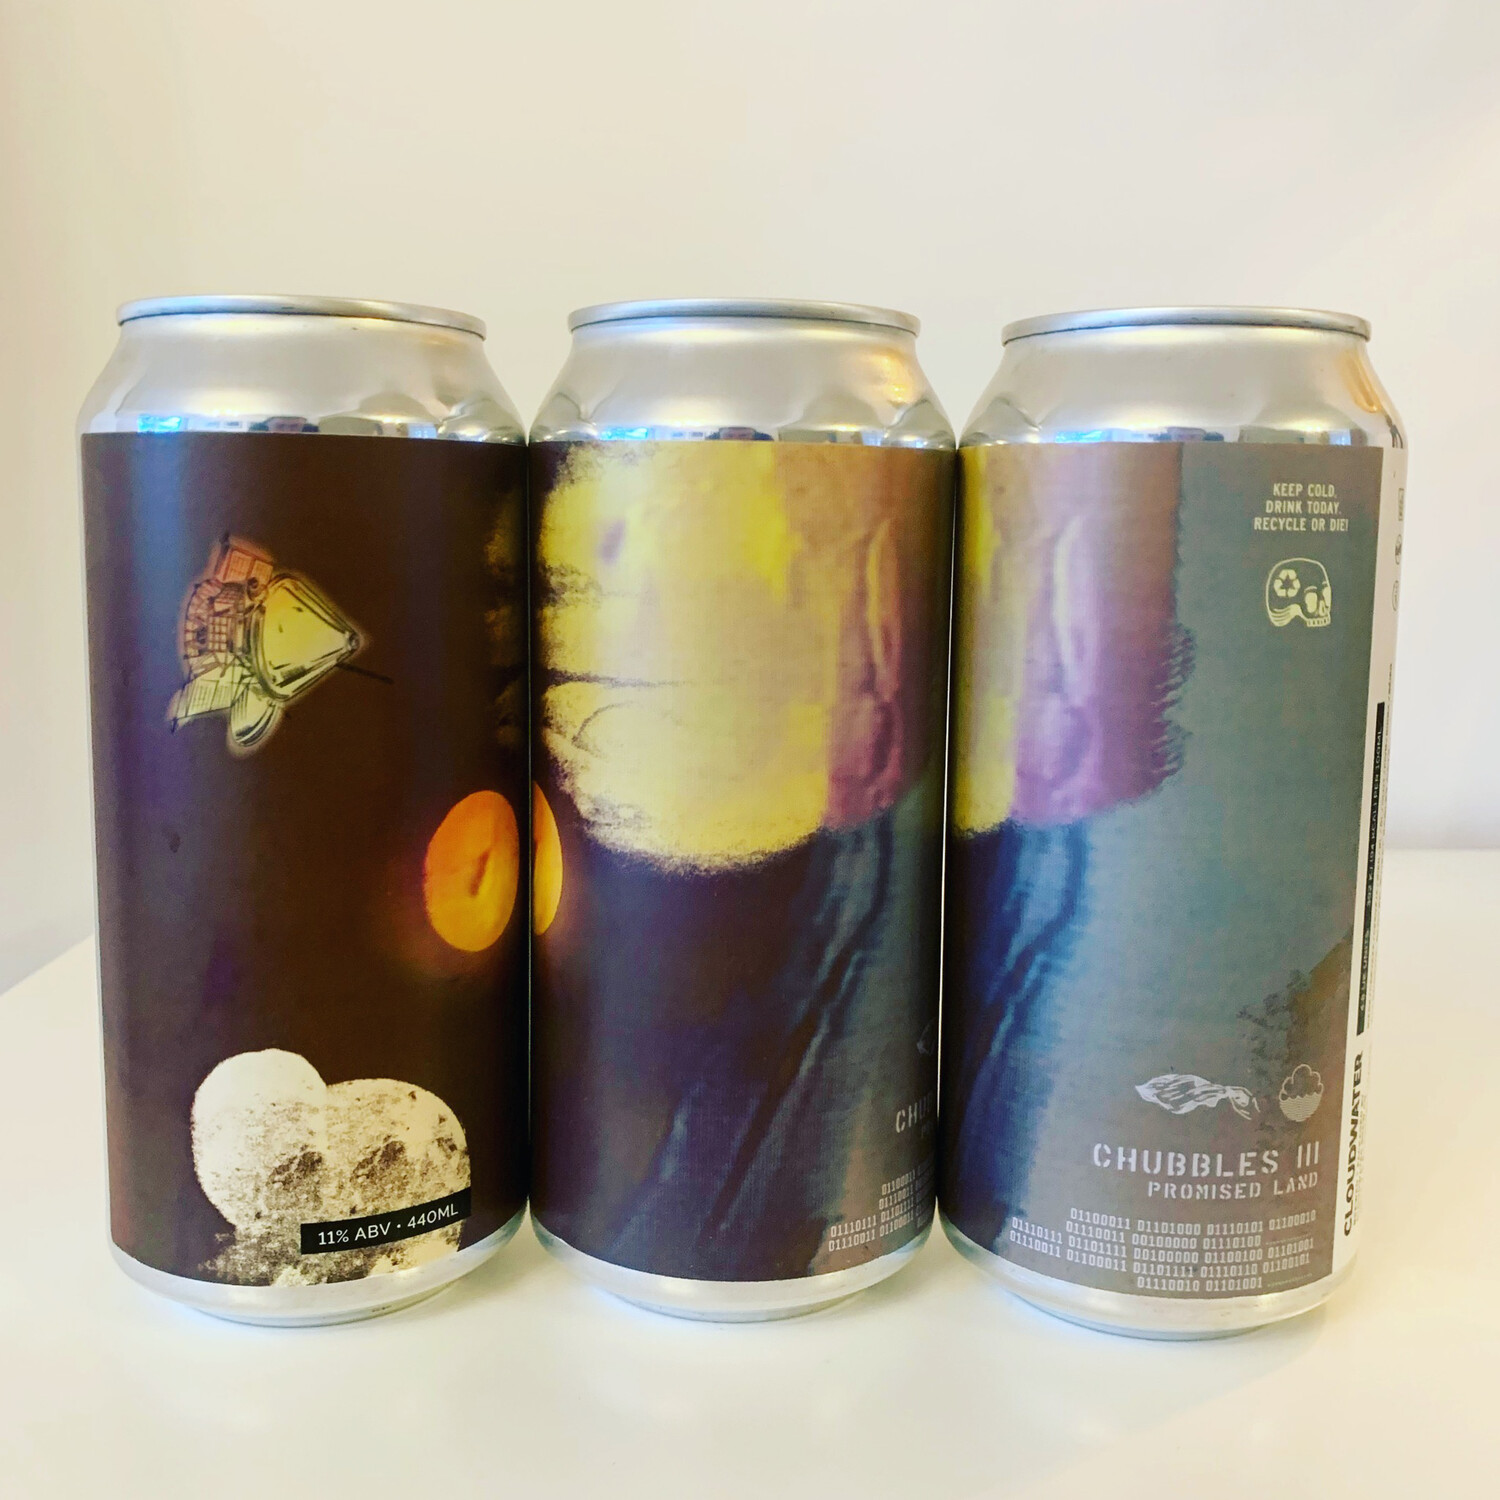 NEW The Veil x Cloudwater 'Chubbles III: Promised Land' TIPA 440ml - 11%